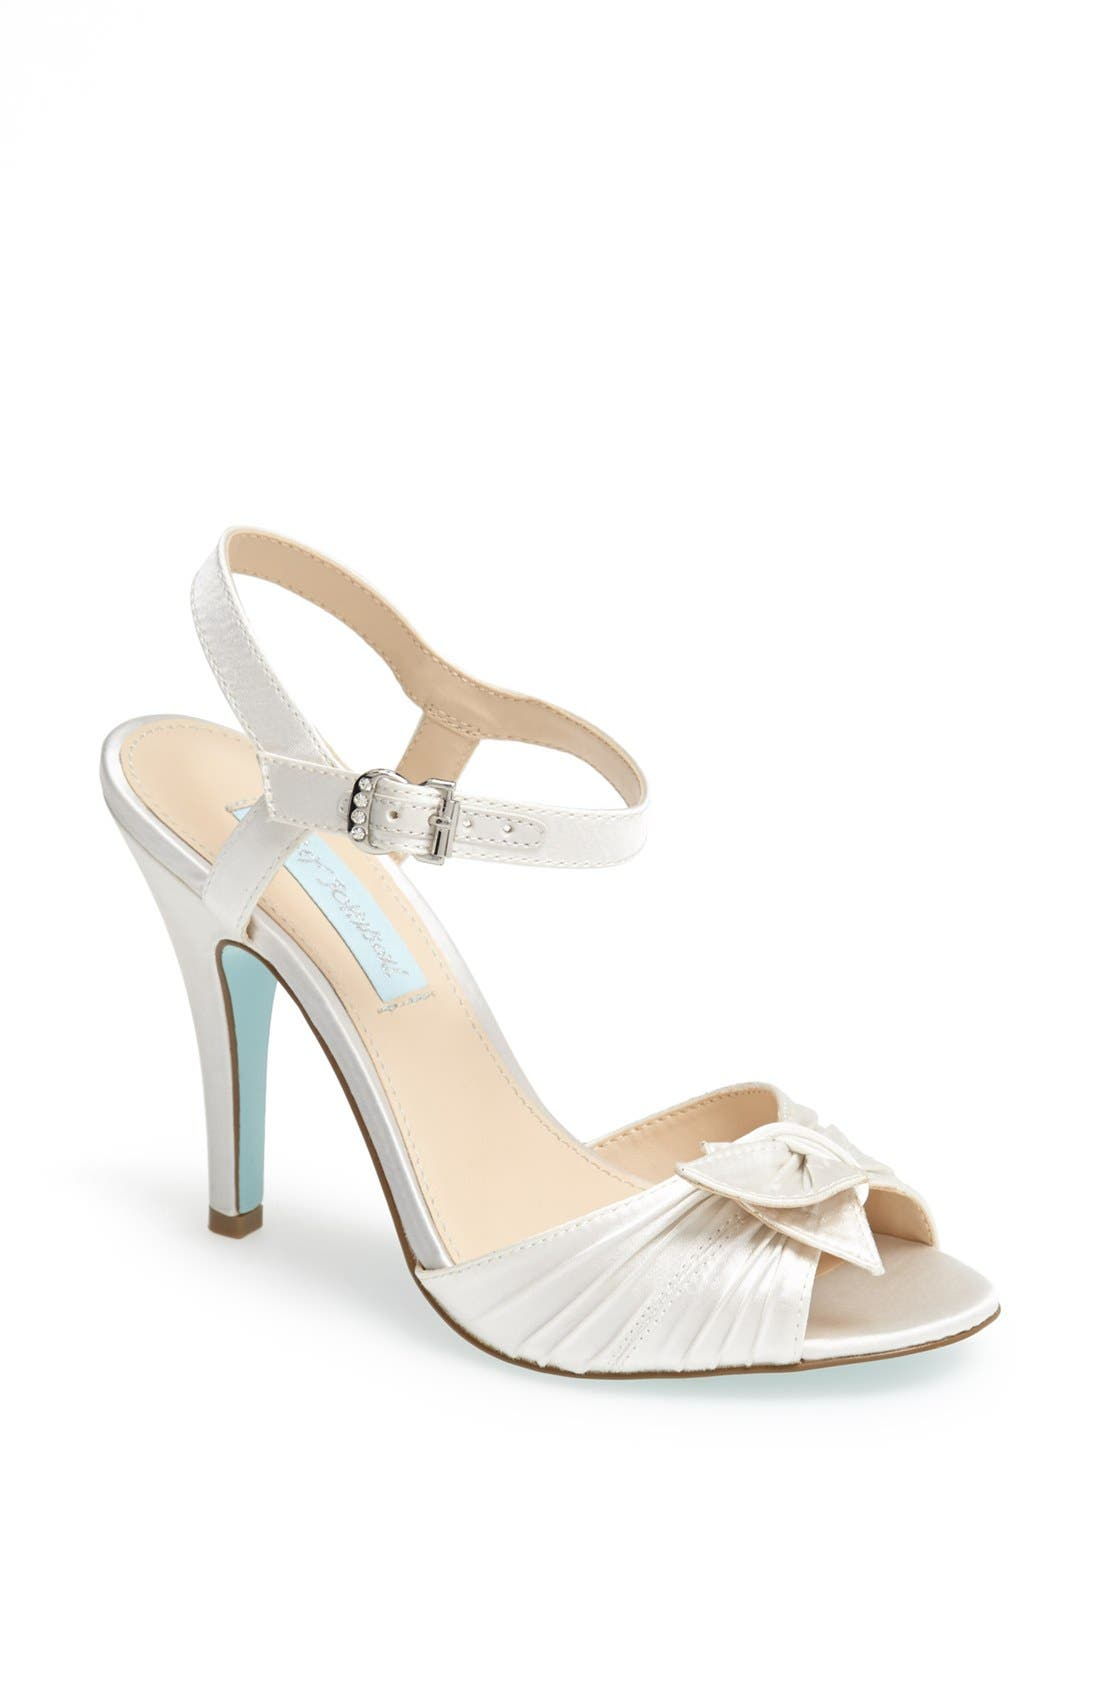 Main Image - Blue by Betsey Johnson 'Party' Satin Sandal